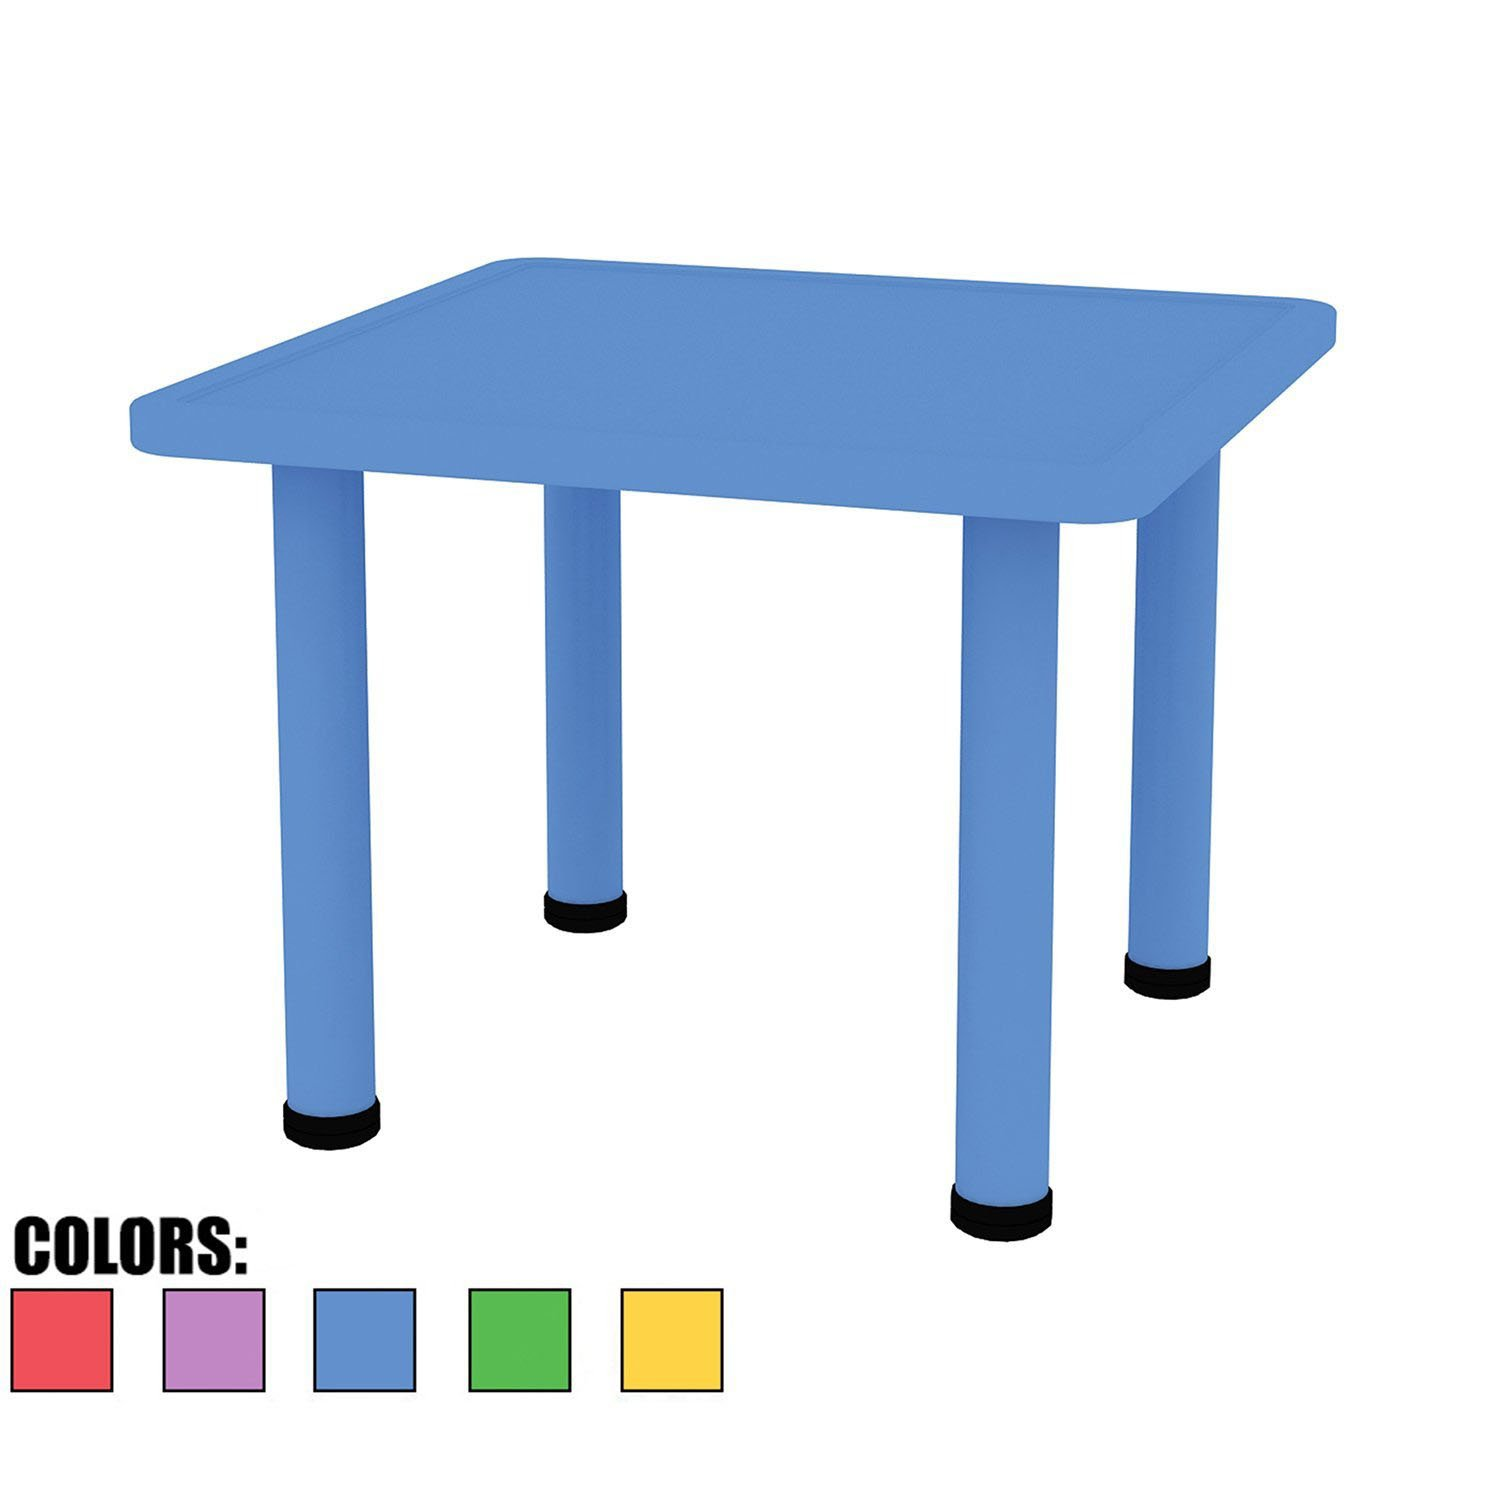 "2xhome – Blue – Kids Table – Height Adjustable 21.5 inches to 22.5 inches - Square Shaped Plastic Activity table With Metal legs for Preschool School Learn Play 24"" x 24"""